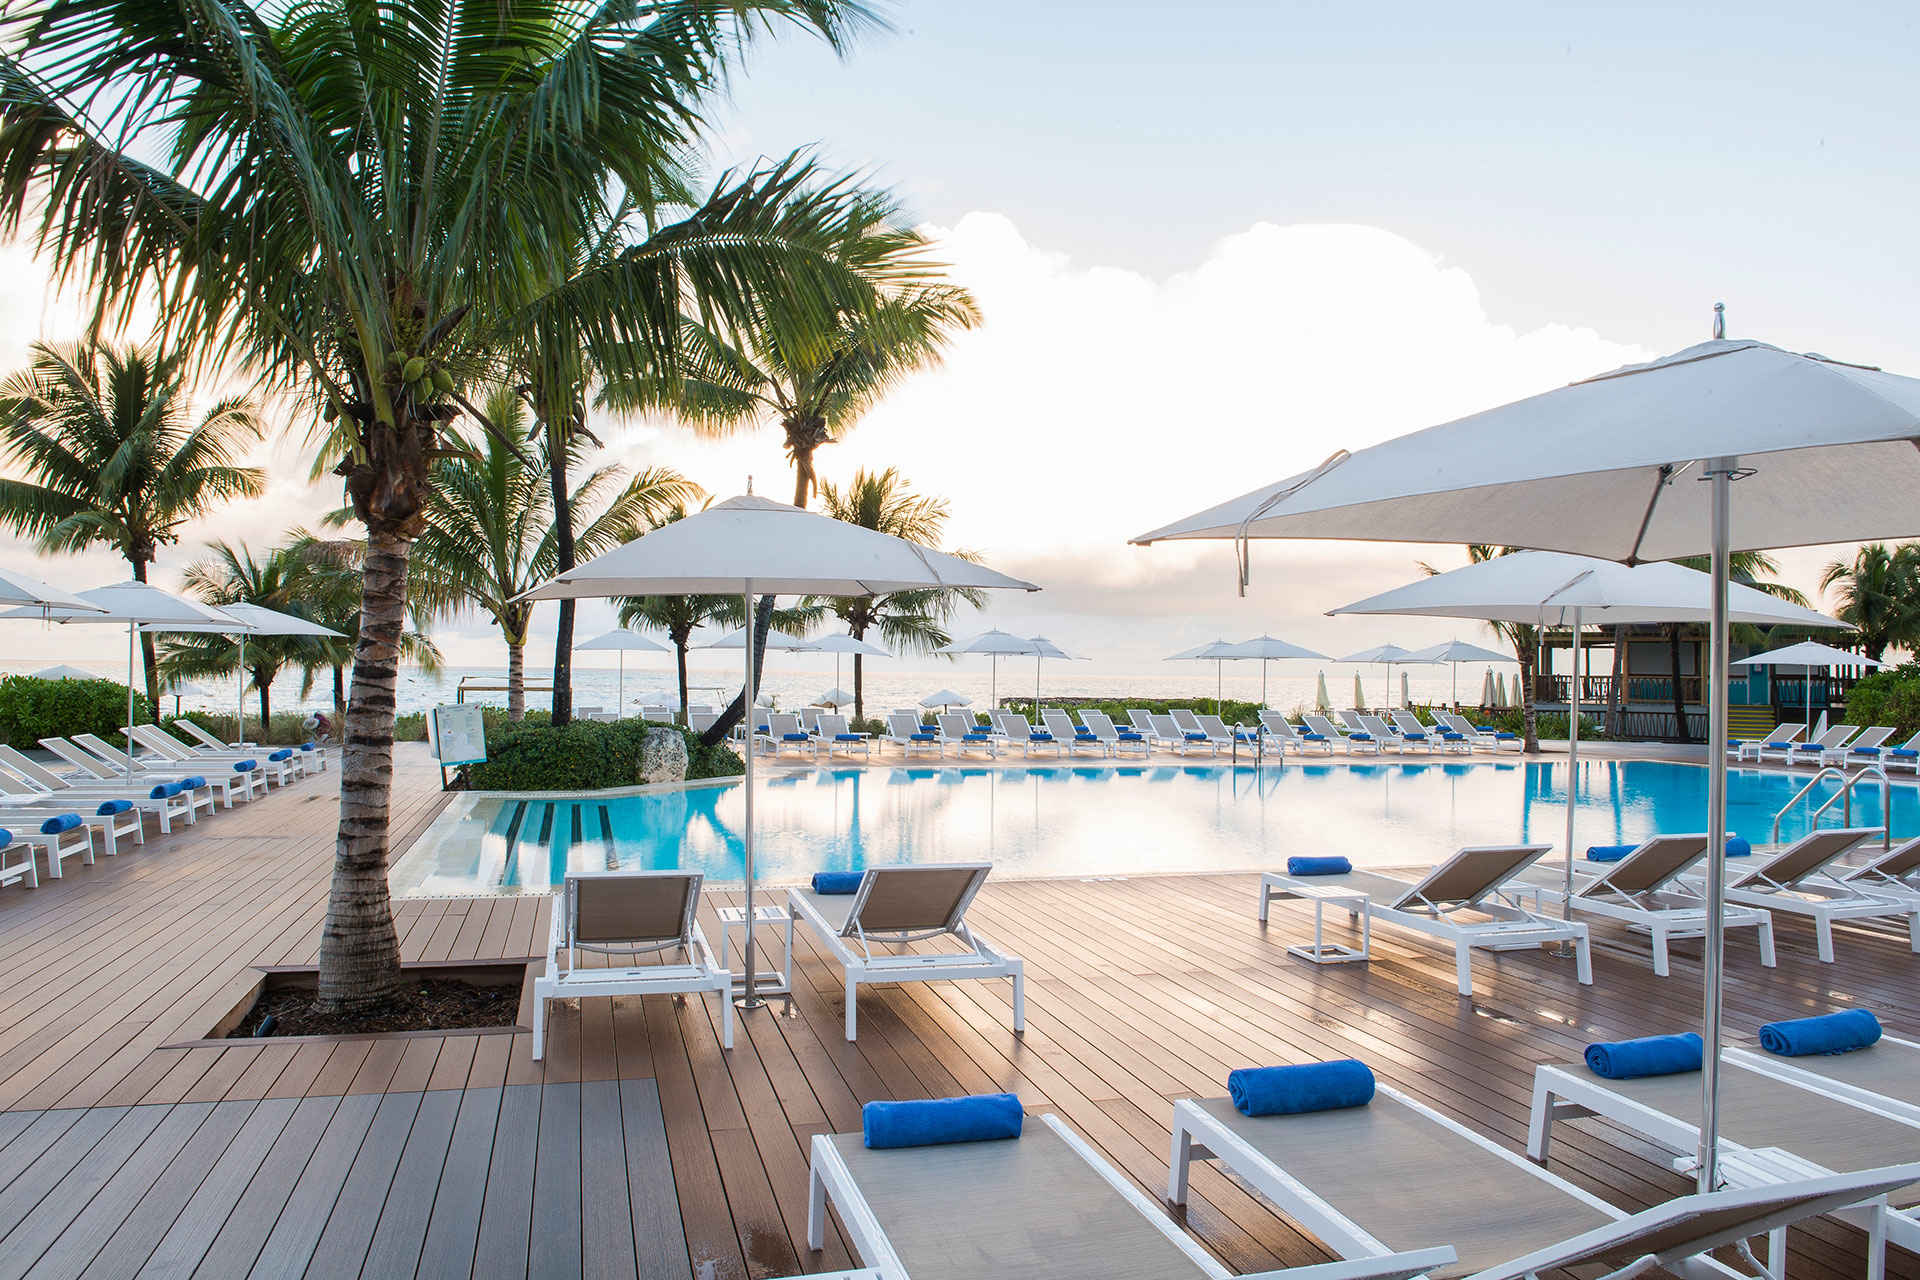 6 Best All Inclusive Bahamas Resorts for Families  Family